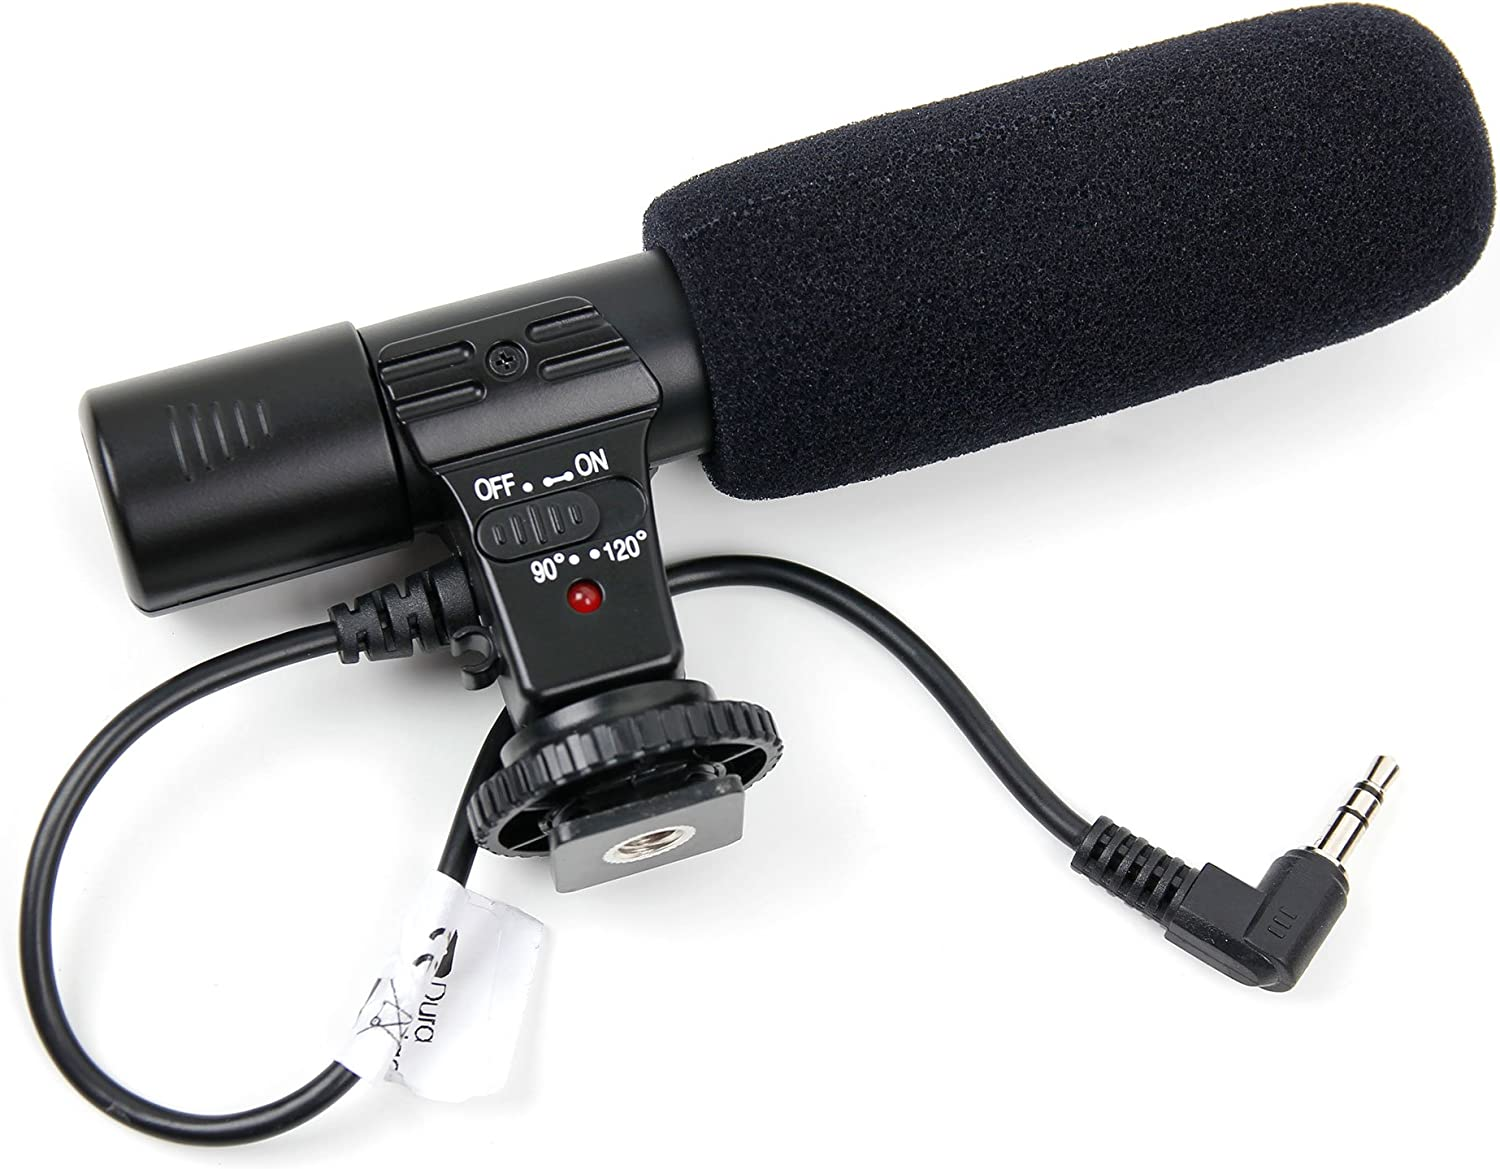 RX10 IV /& DSC-RX10M4 Cameras DURAGADGET Stereo Microphone Compatible with Sony Alpha A7 III Alpha A7R III Alpha A9 II